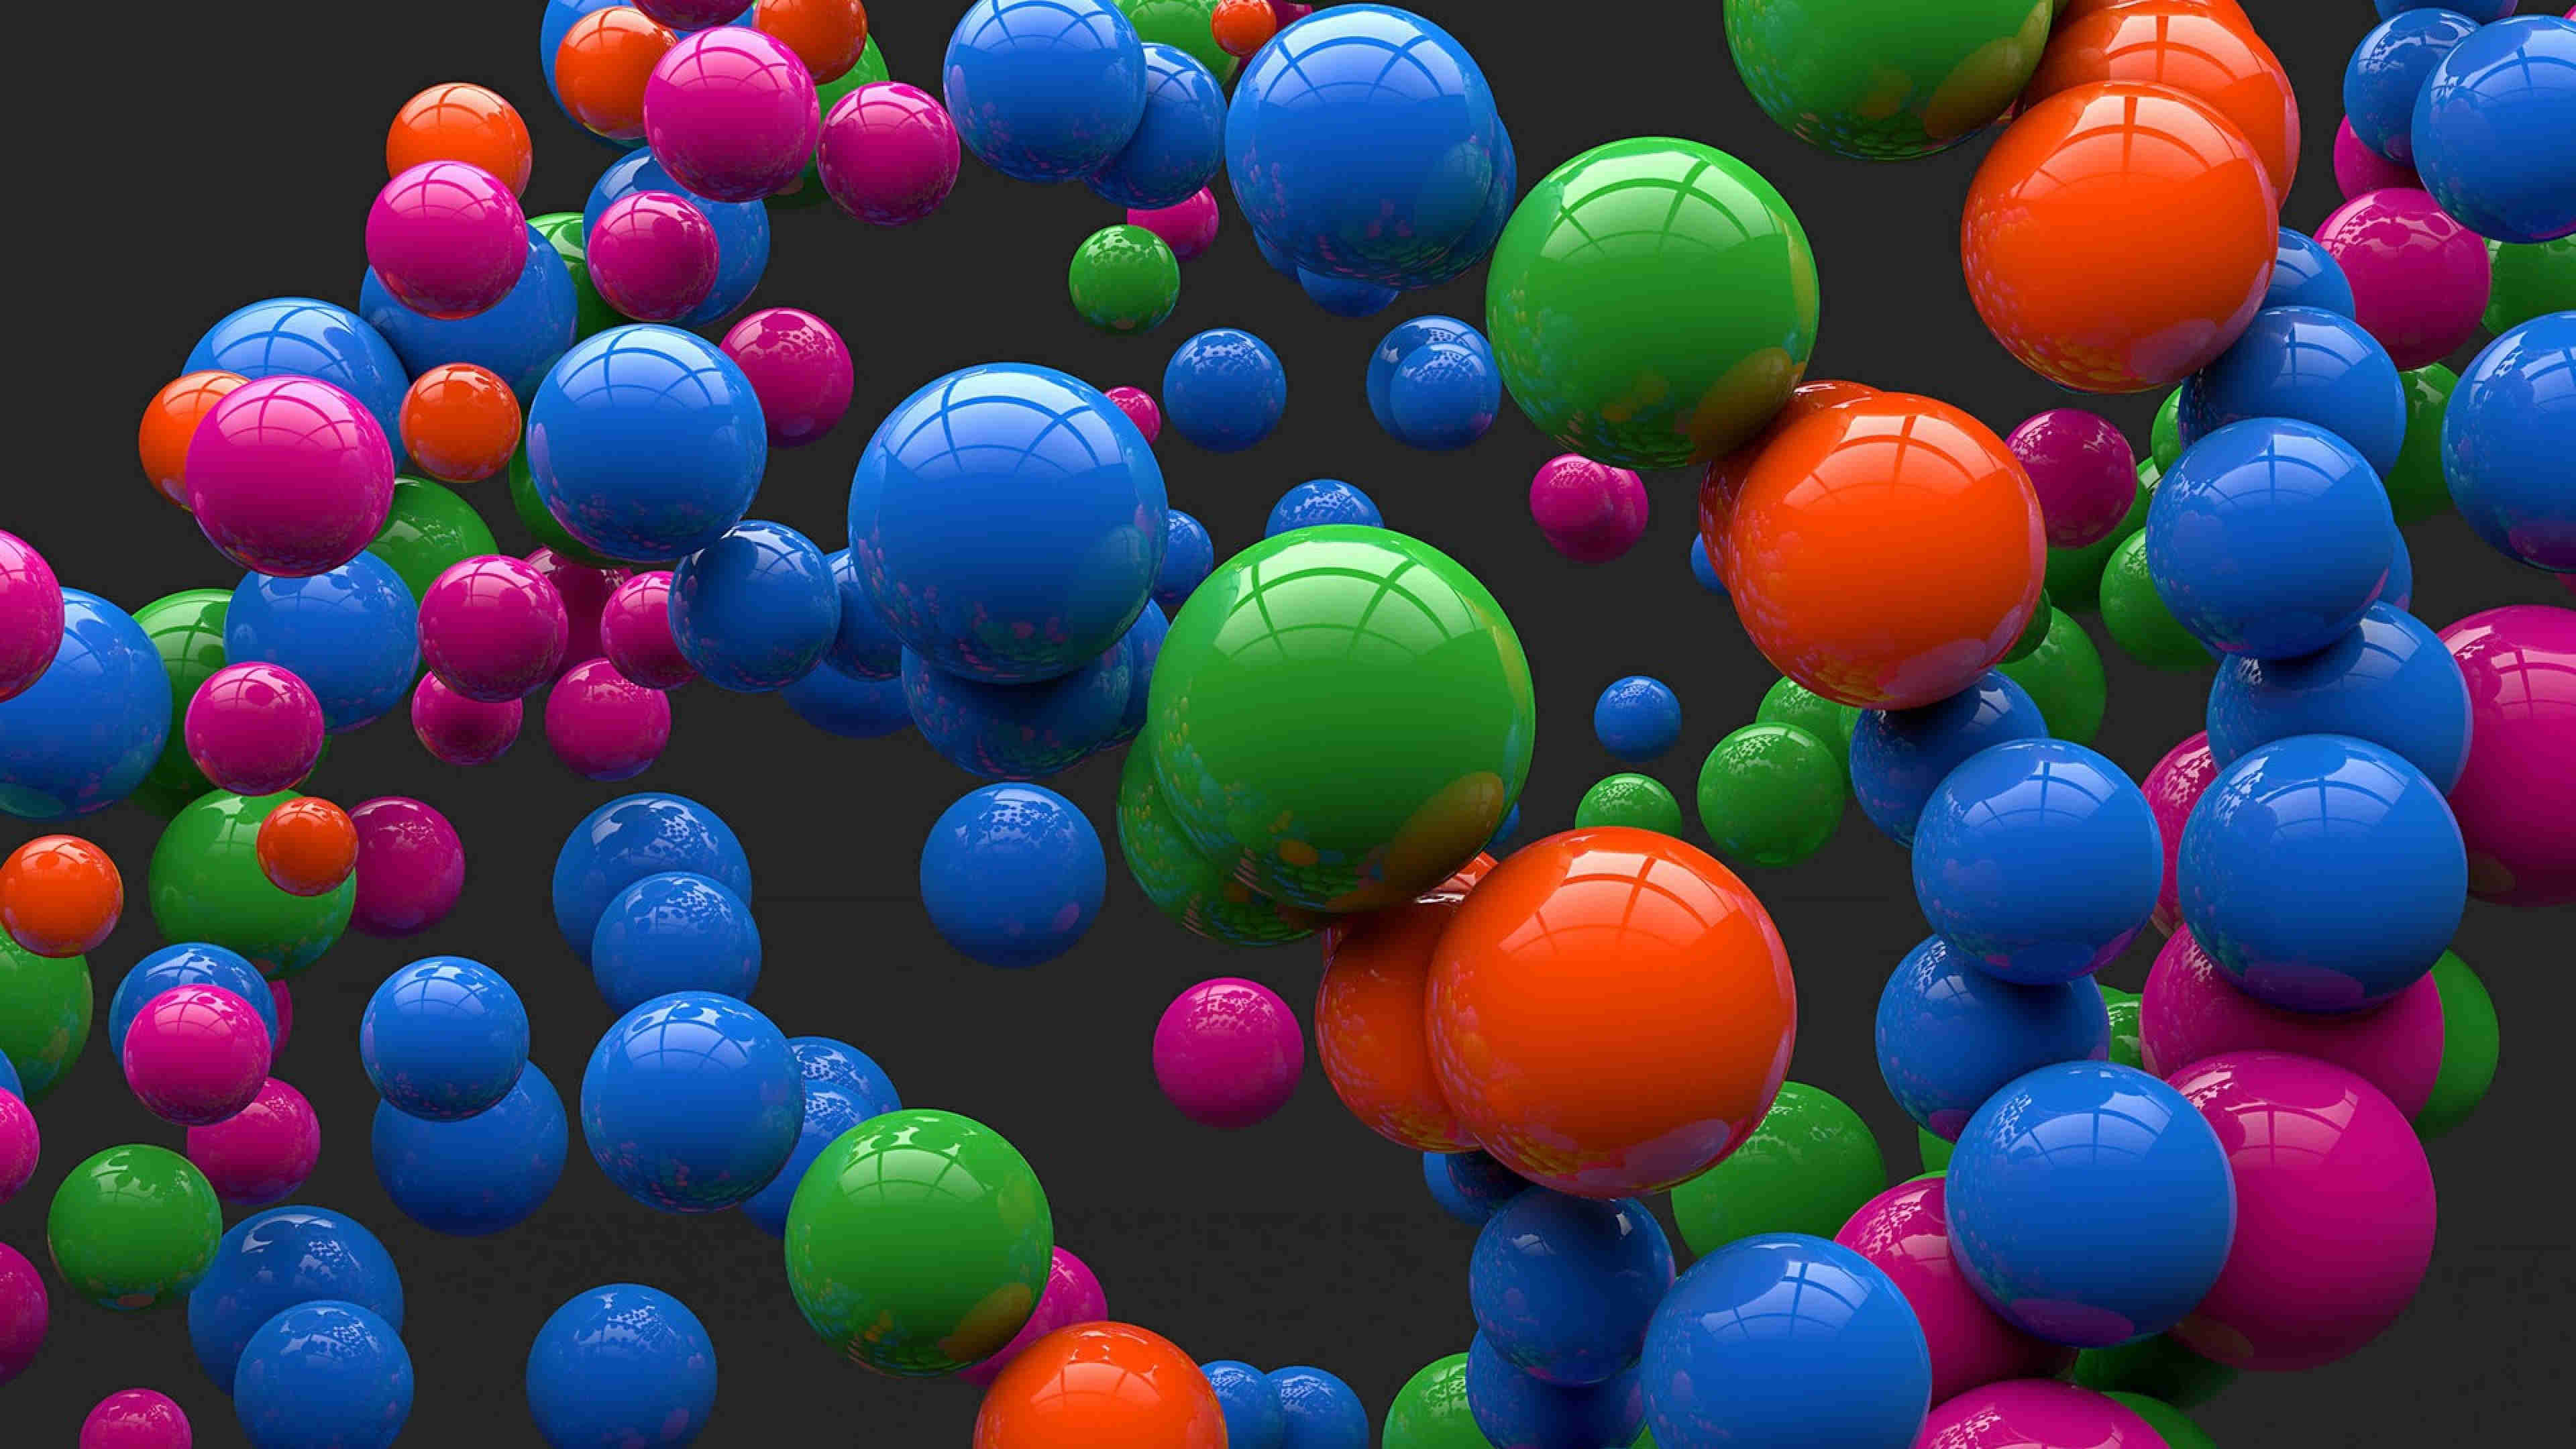 Colorful Ballons Wallpaper For Desktop